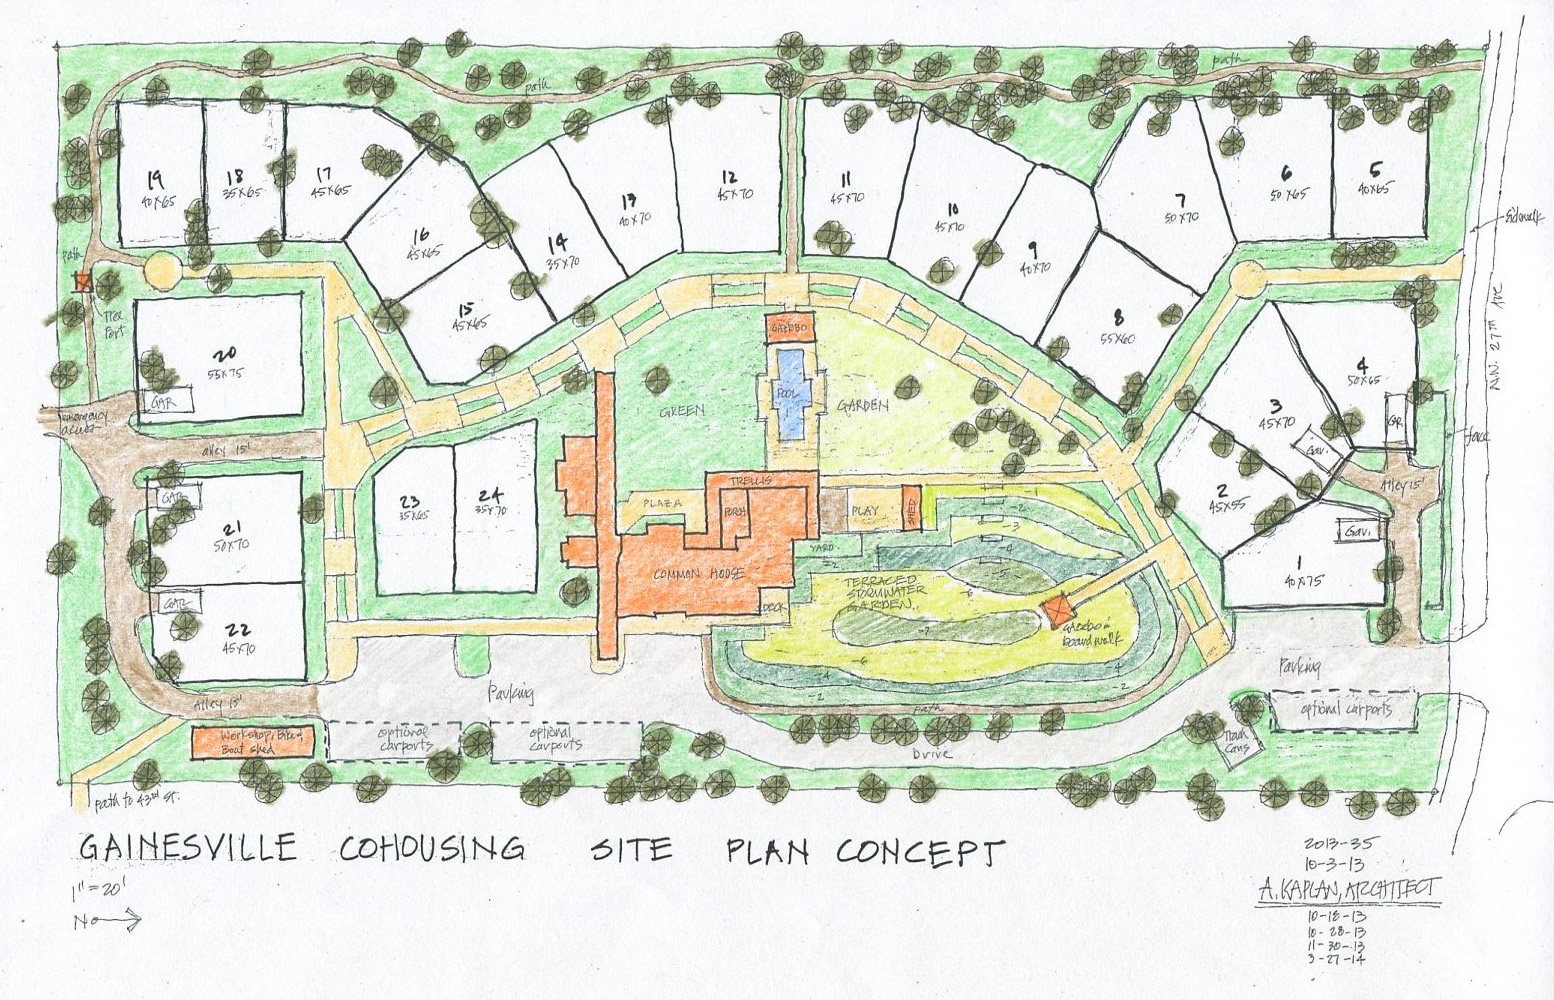 Gainesville cohousing has hired a builder gainesville cohousing Site plan design